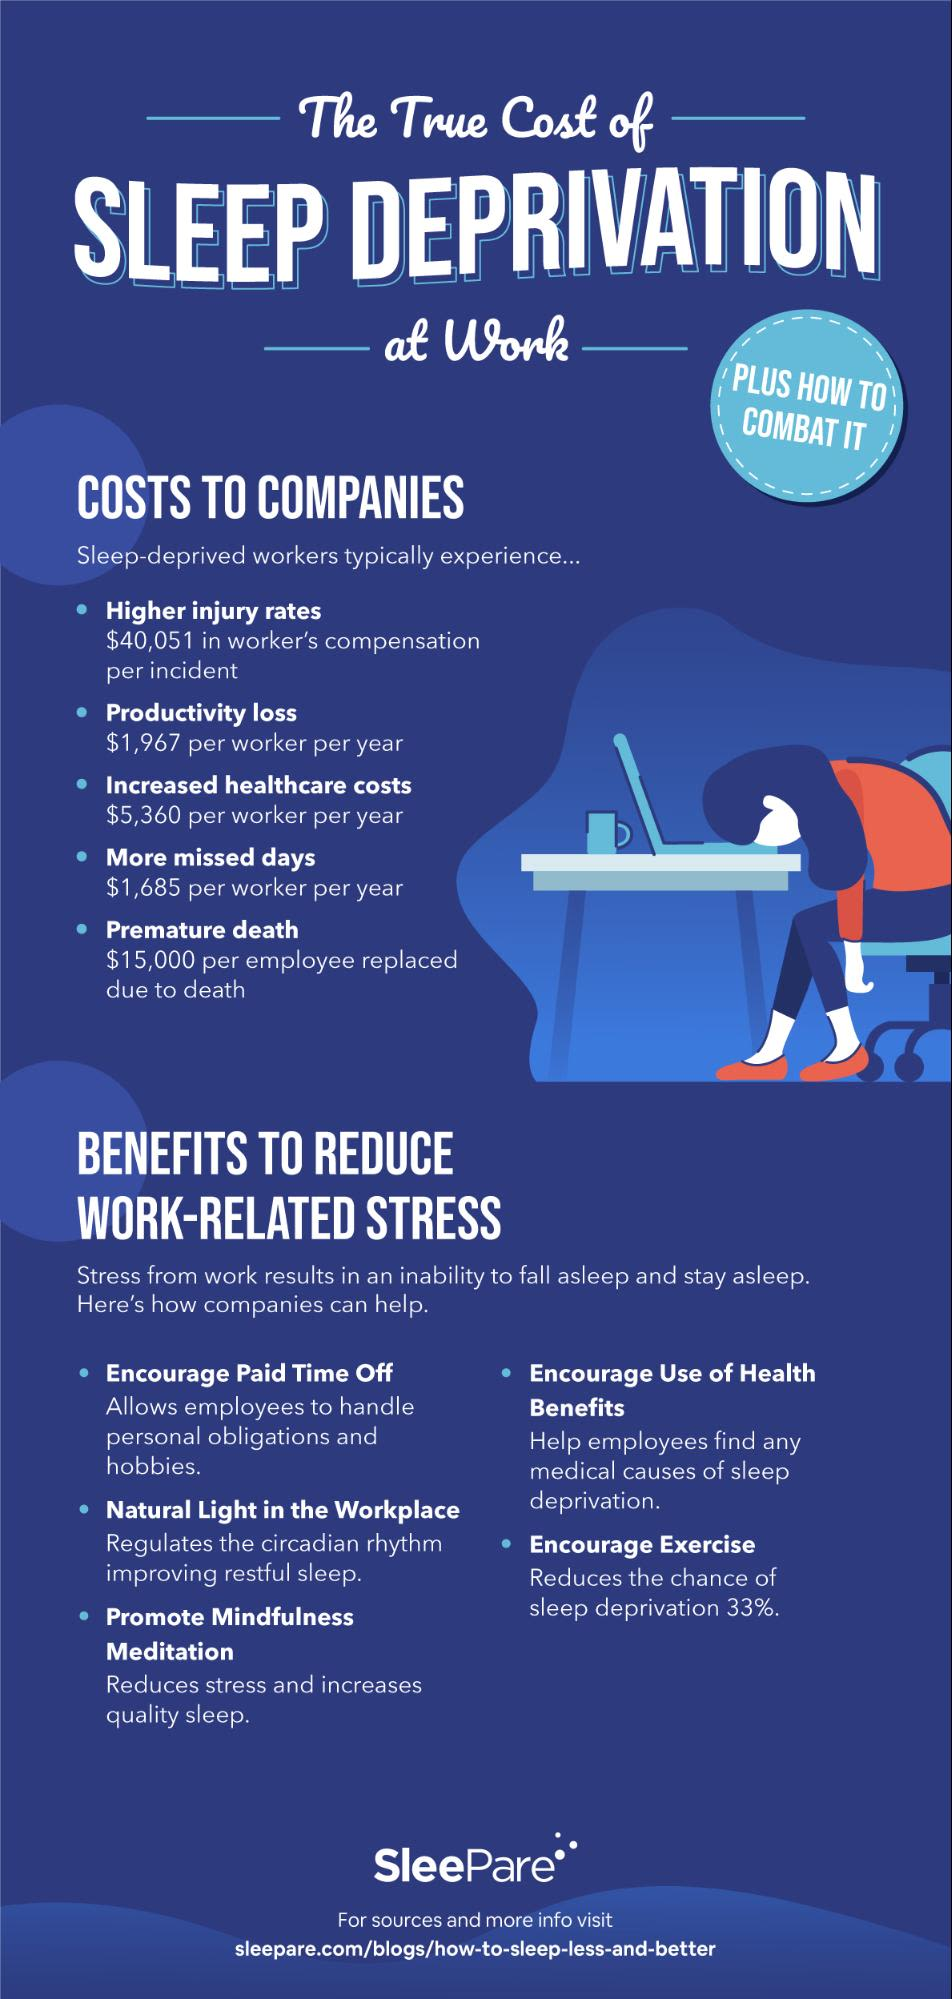 Costs to Companies  Sleep-deprived workers typically experience... Higher injury rates  $40,051 in worker's compensation per incident Productivity loss $1,967 per worker per year Increased healthcare costs $5,360 per worker per year More missed days $1,685 per worker per year Premature death $15,000 per employee replaced due to death   Section 2: Benefits to Reduce Work-Related Stress Stress from work results in an inability to fall asleep and stay asleep. Here's how companies can help. Encourage Paid Time Off Allows employees to handle personal obligations and hobbies. Natural Light in the Workplace Regulates the circadian rhythm improving restful sleep. Promote Mindfulness Meditation Reduces stress and increases quality sleep. Encourage Use of Health Benefits Help employees find any medical causes of sleep deprivation. Encourage Exercise Reduces the chance of sleep deprivation 33%.